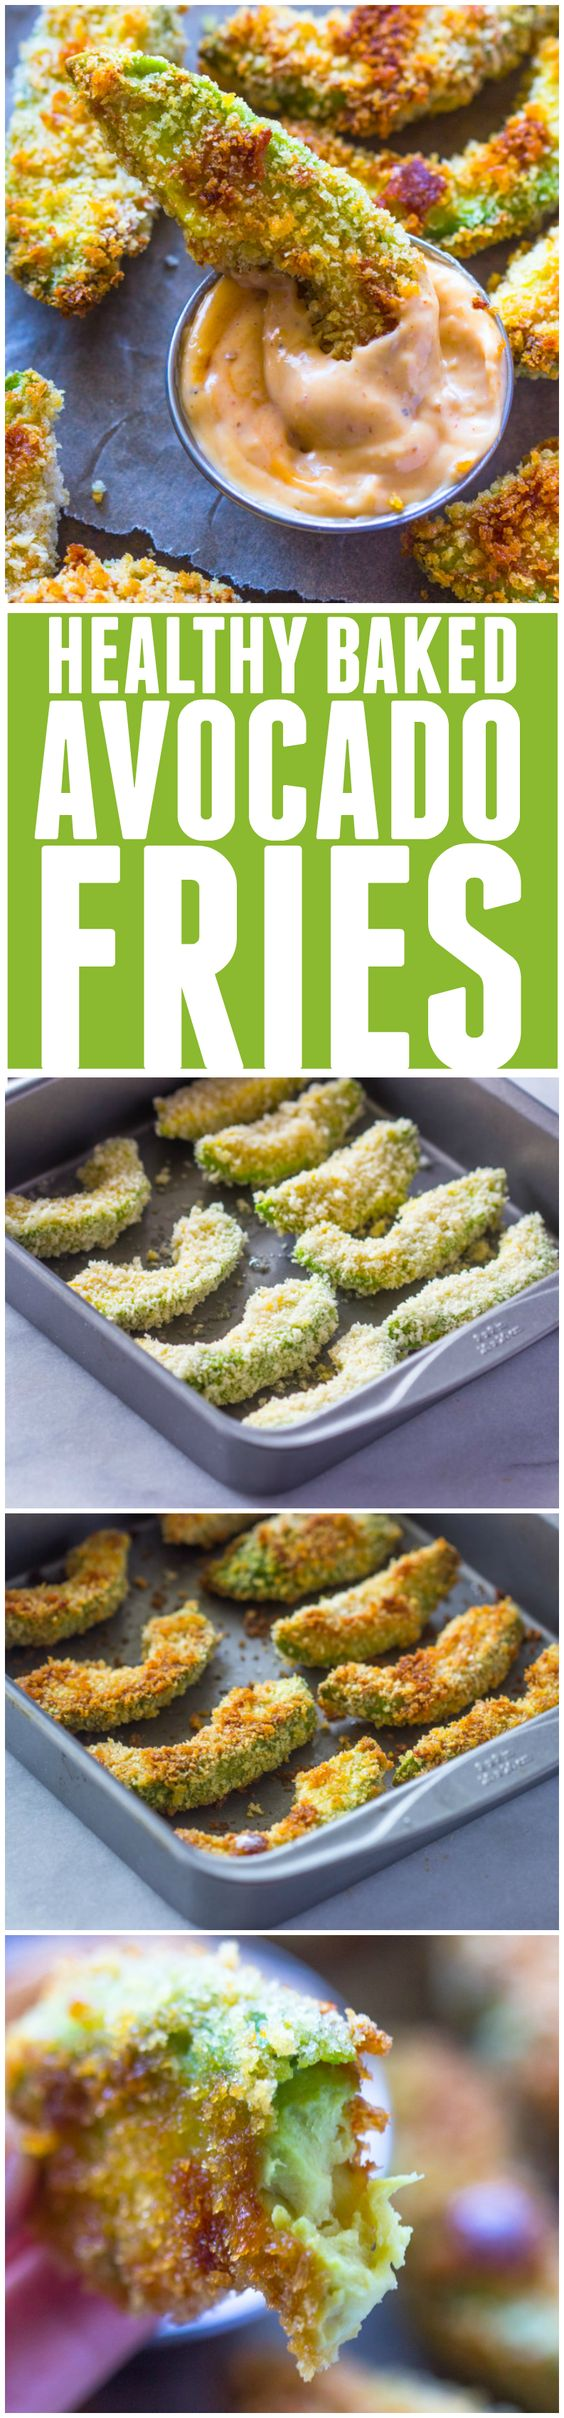 Crispy Baked Avocado Fries & Chipotle Dipping Sauce | These guilt-free fries look amazing!